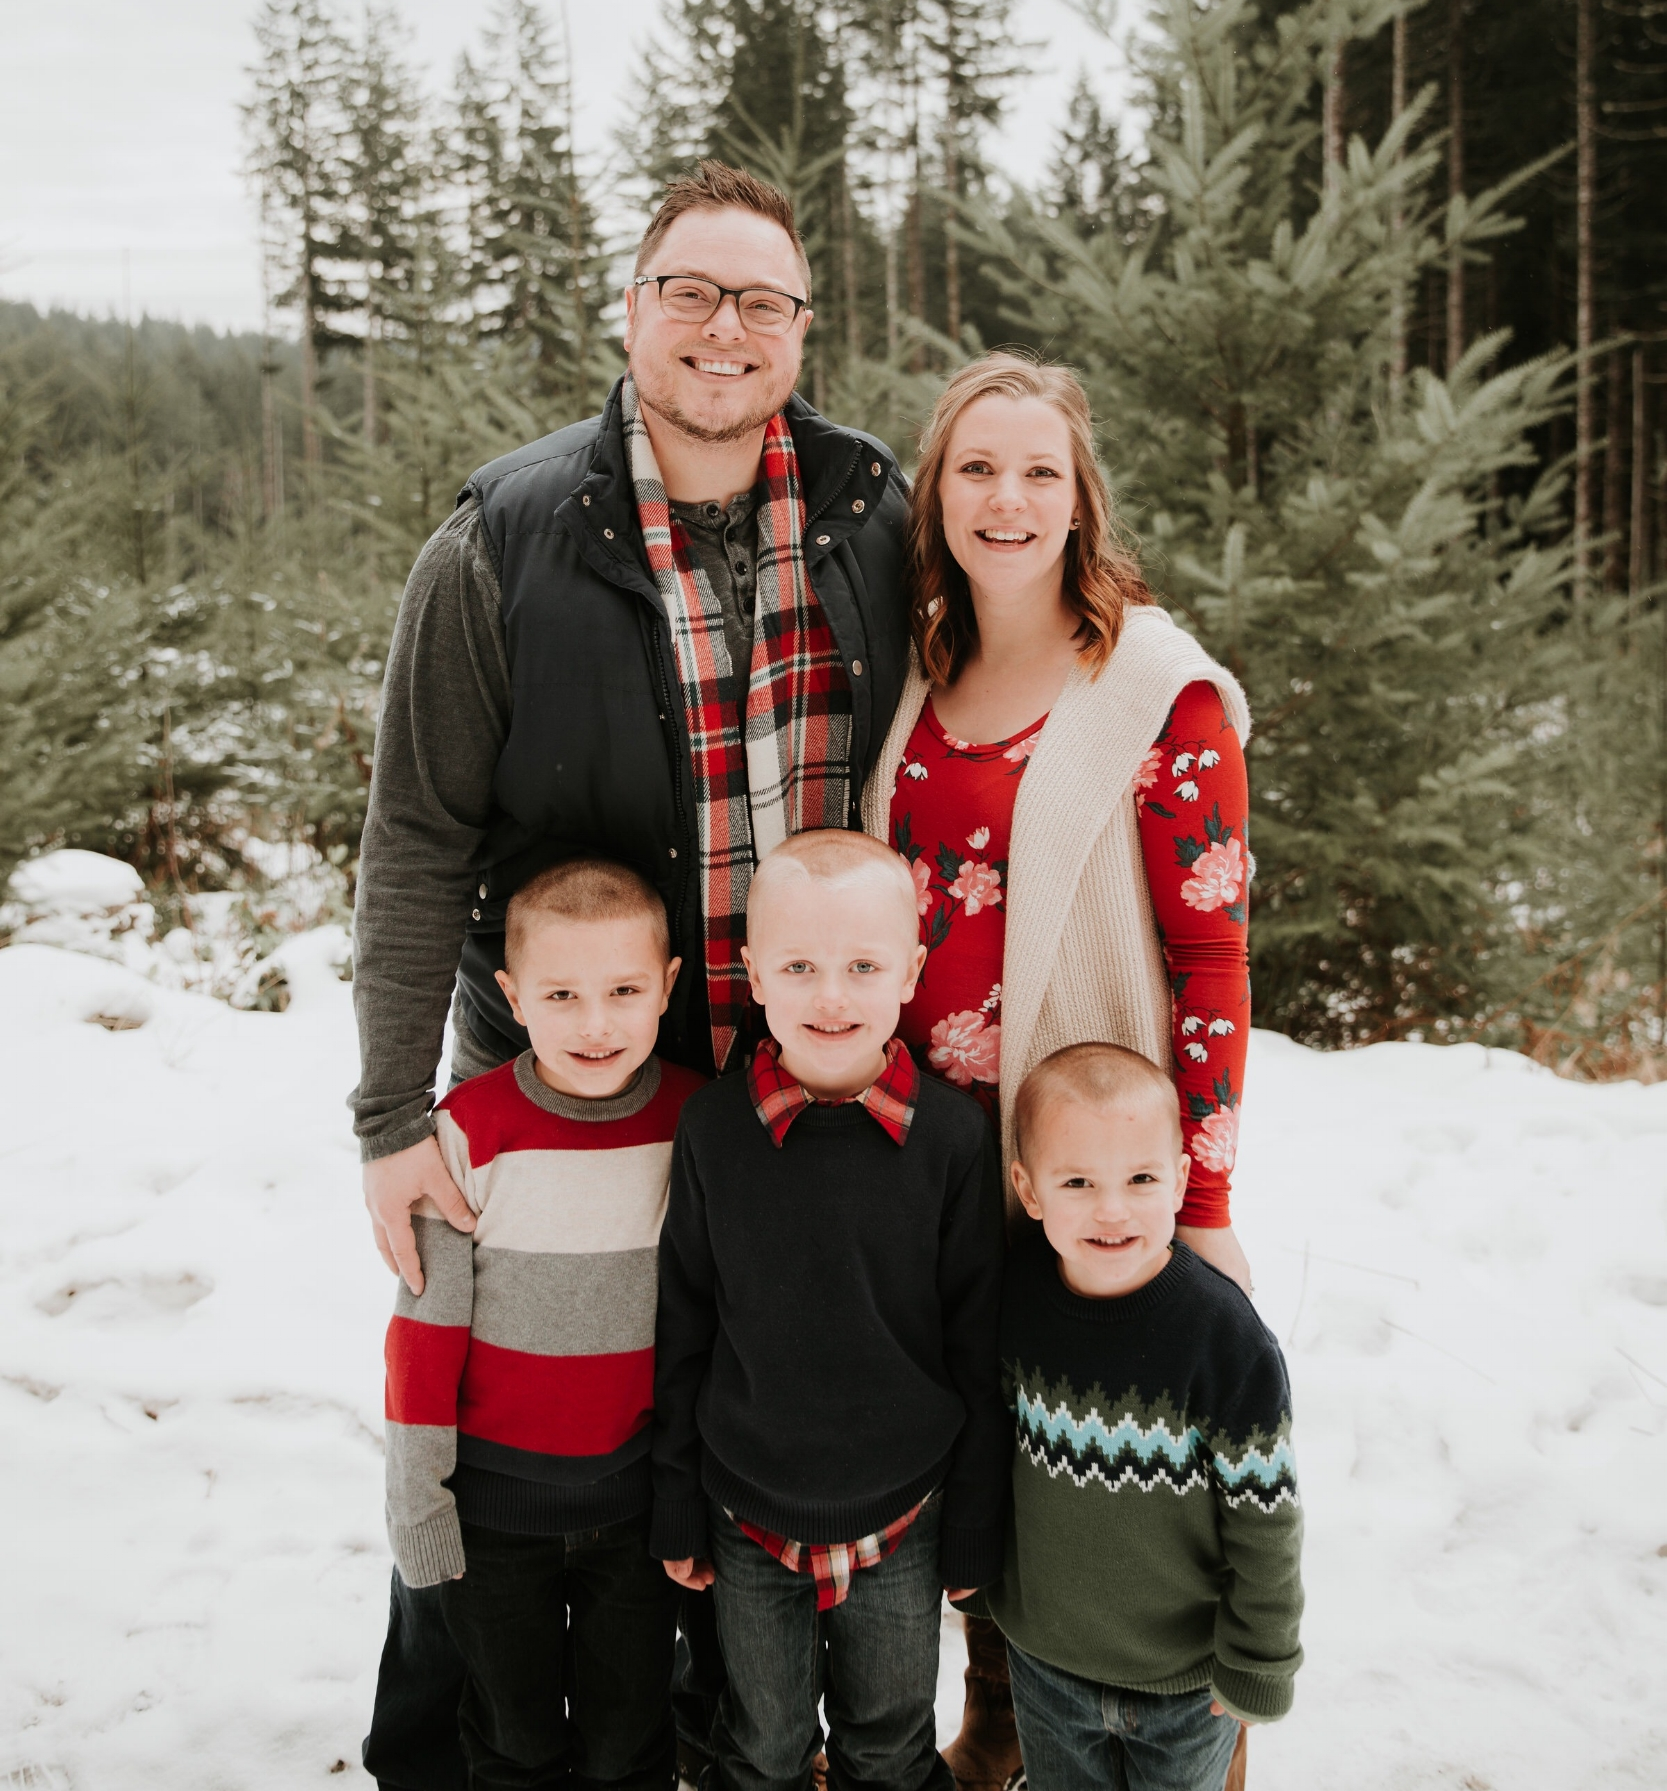 Fun Fact... We wrecked our car literally 15 minutes before taking these family photos as we were driving up the mountain... Obviously everyone escaped unscathed.